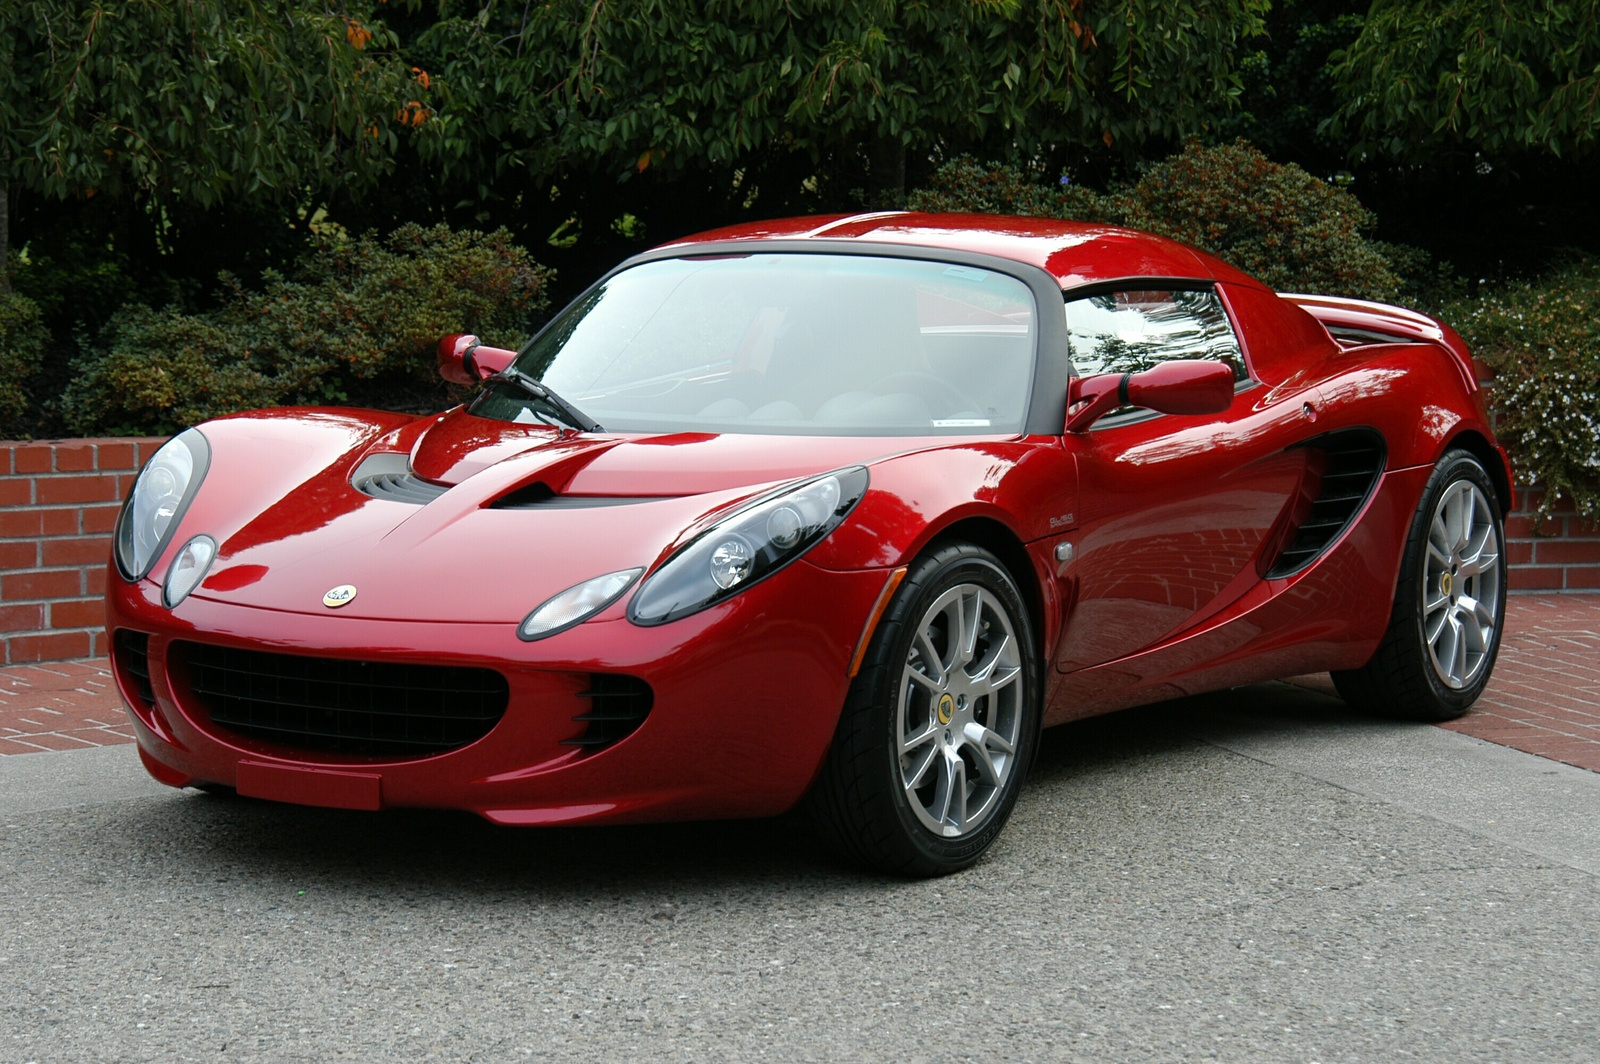 2008 Lotus Elise HQ Photos and Specs